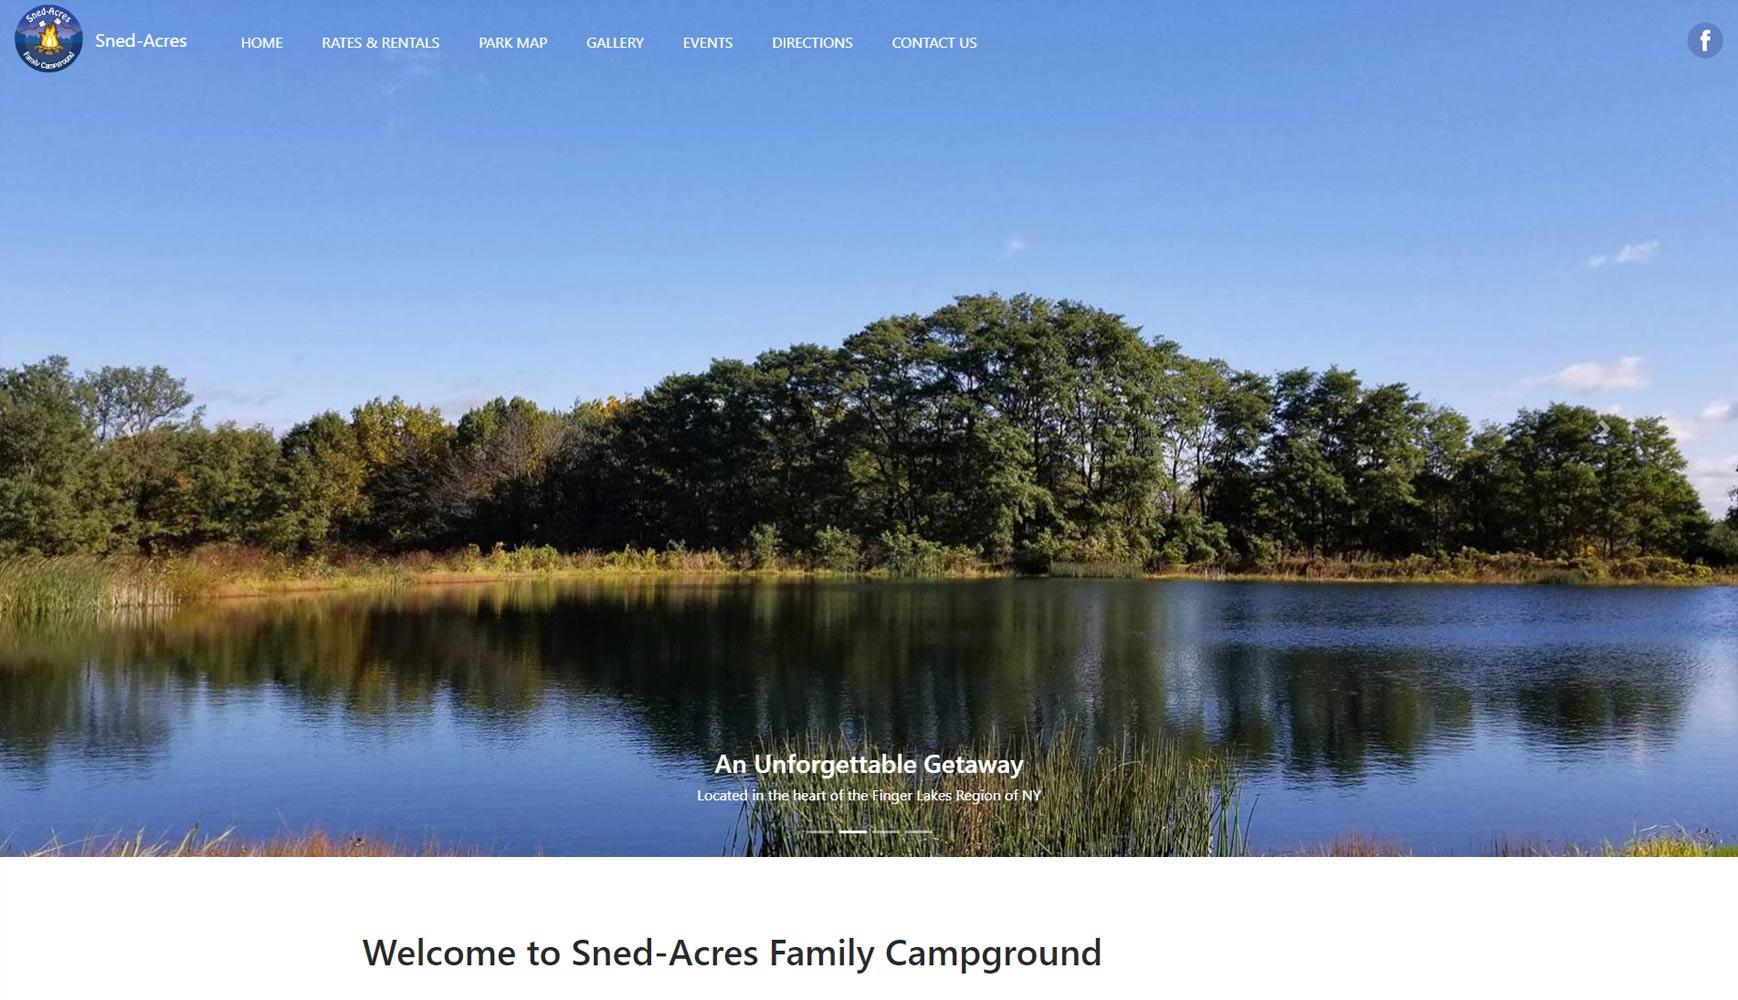 Sned-Acres Family Campground